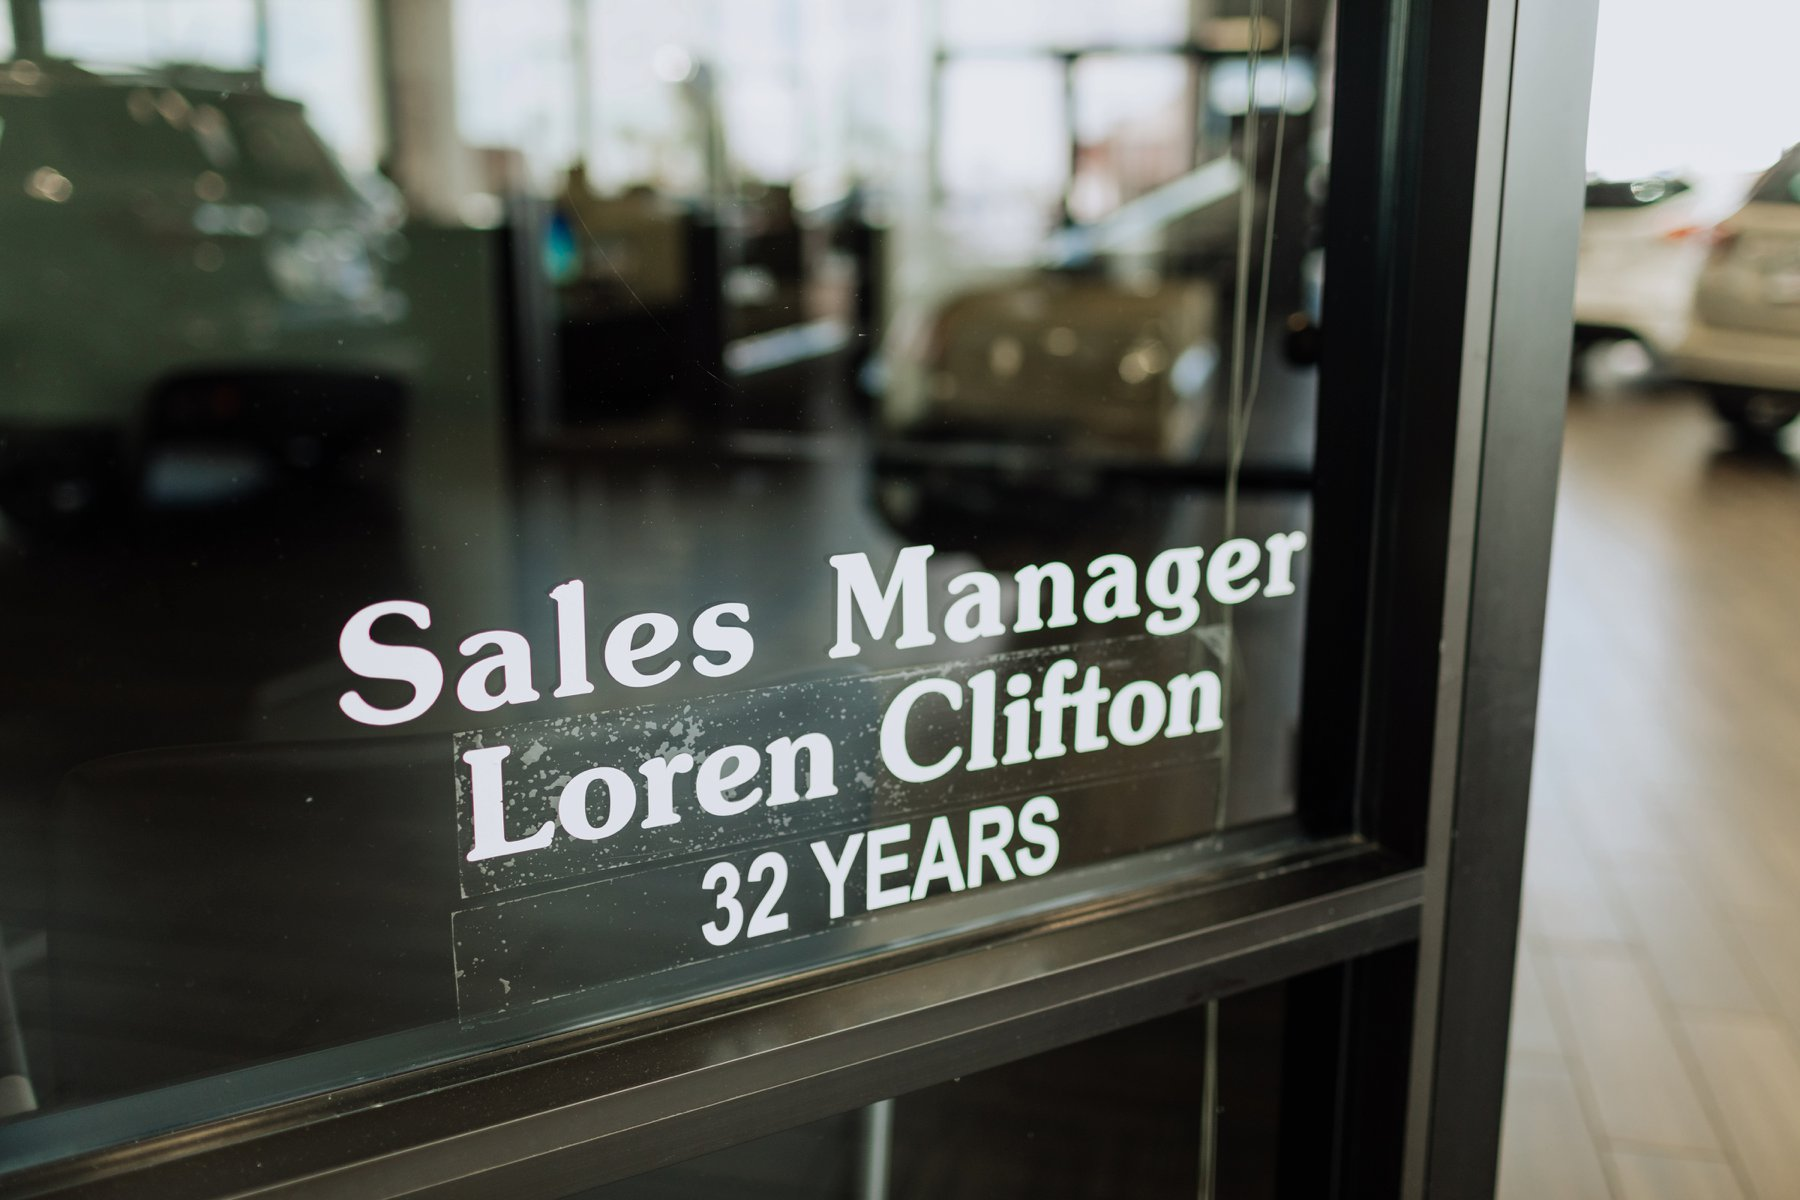 32 years with the company Sanderson Ford decal on the employee office window